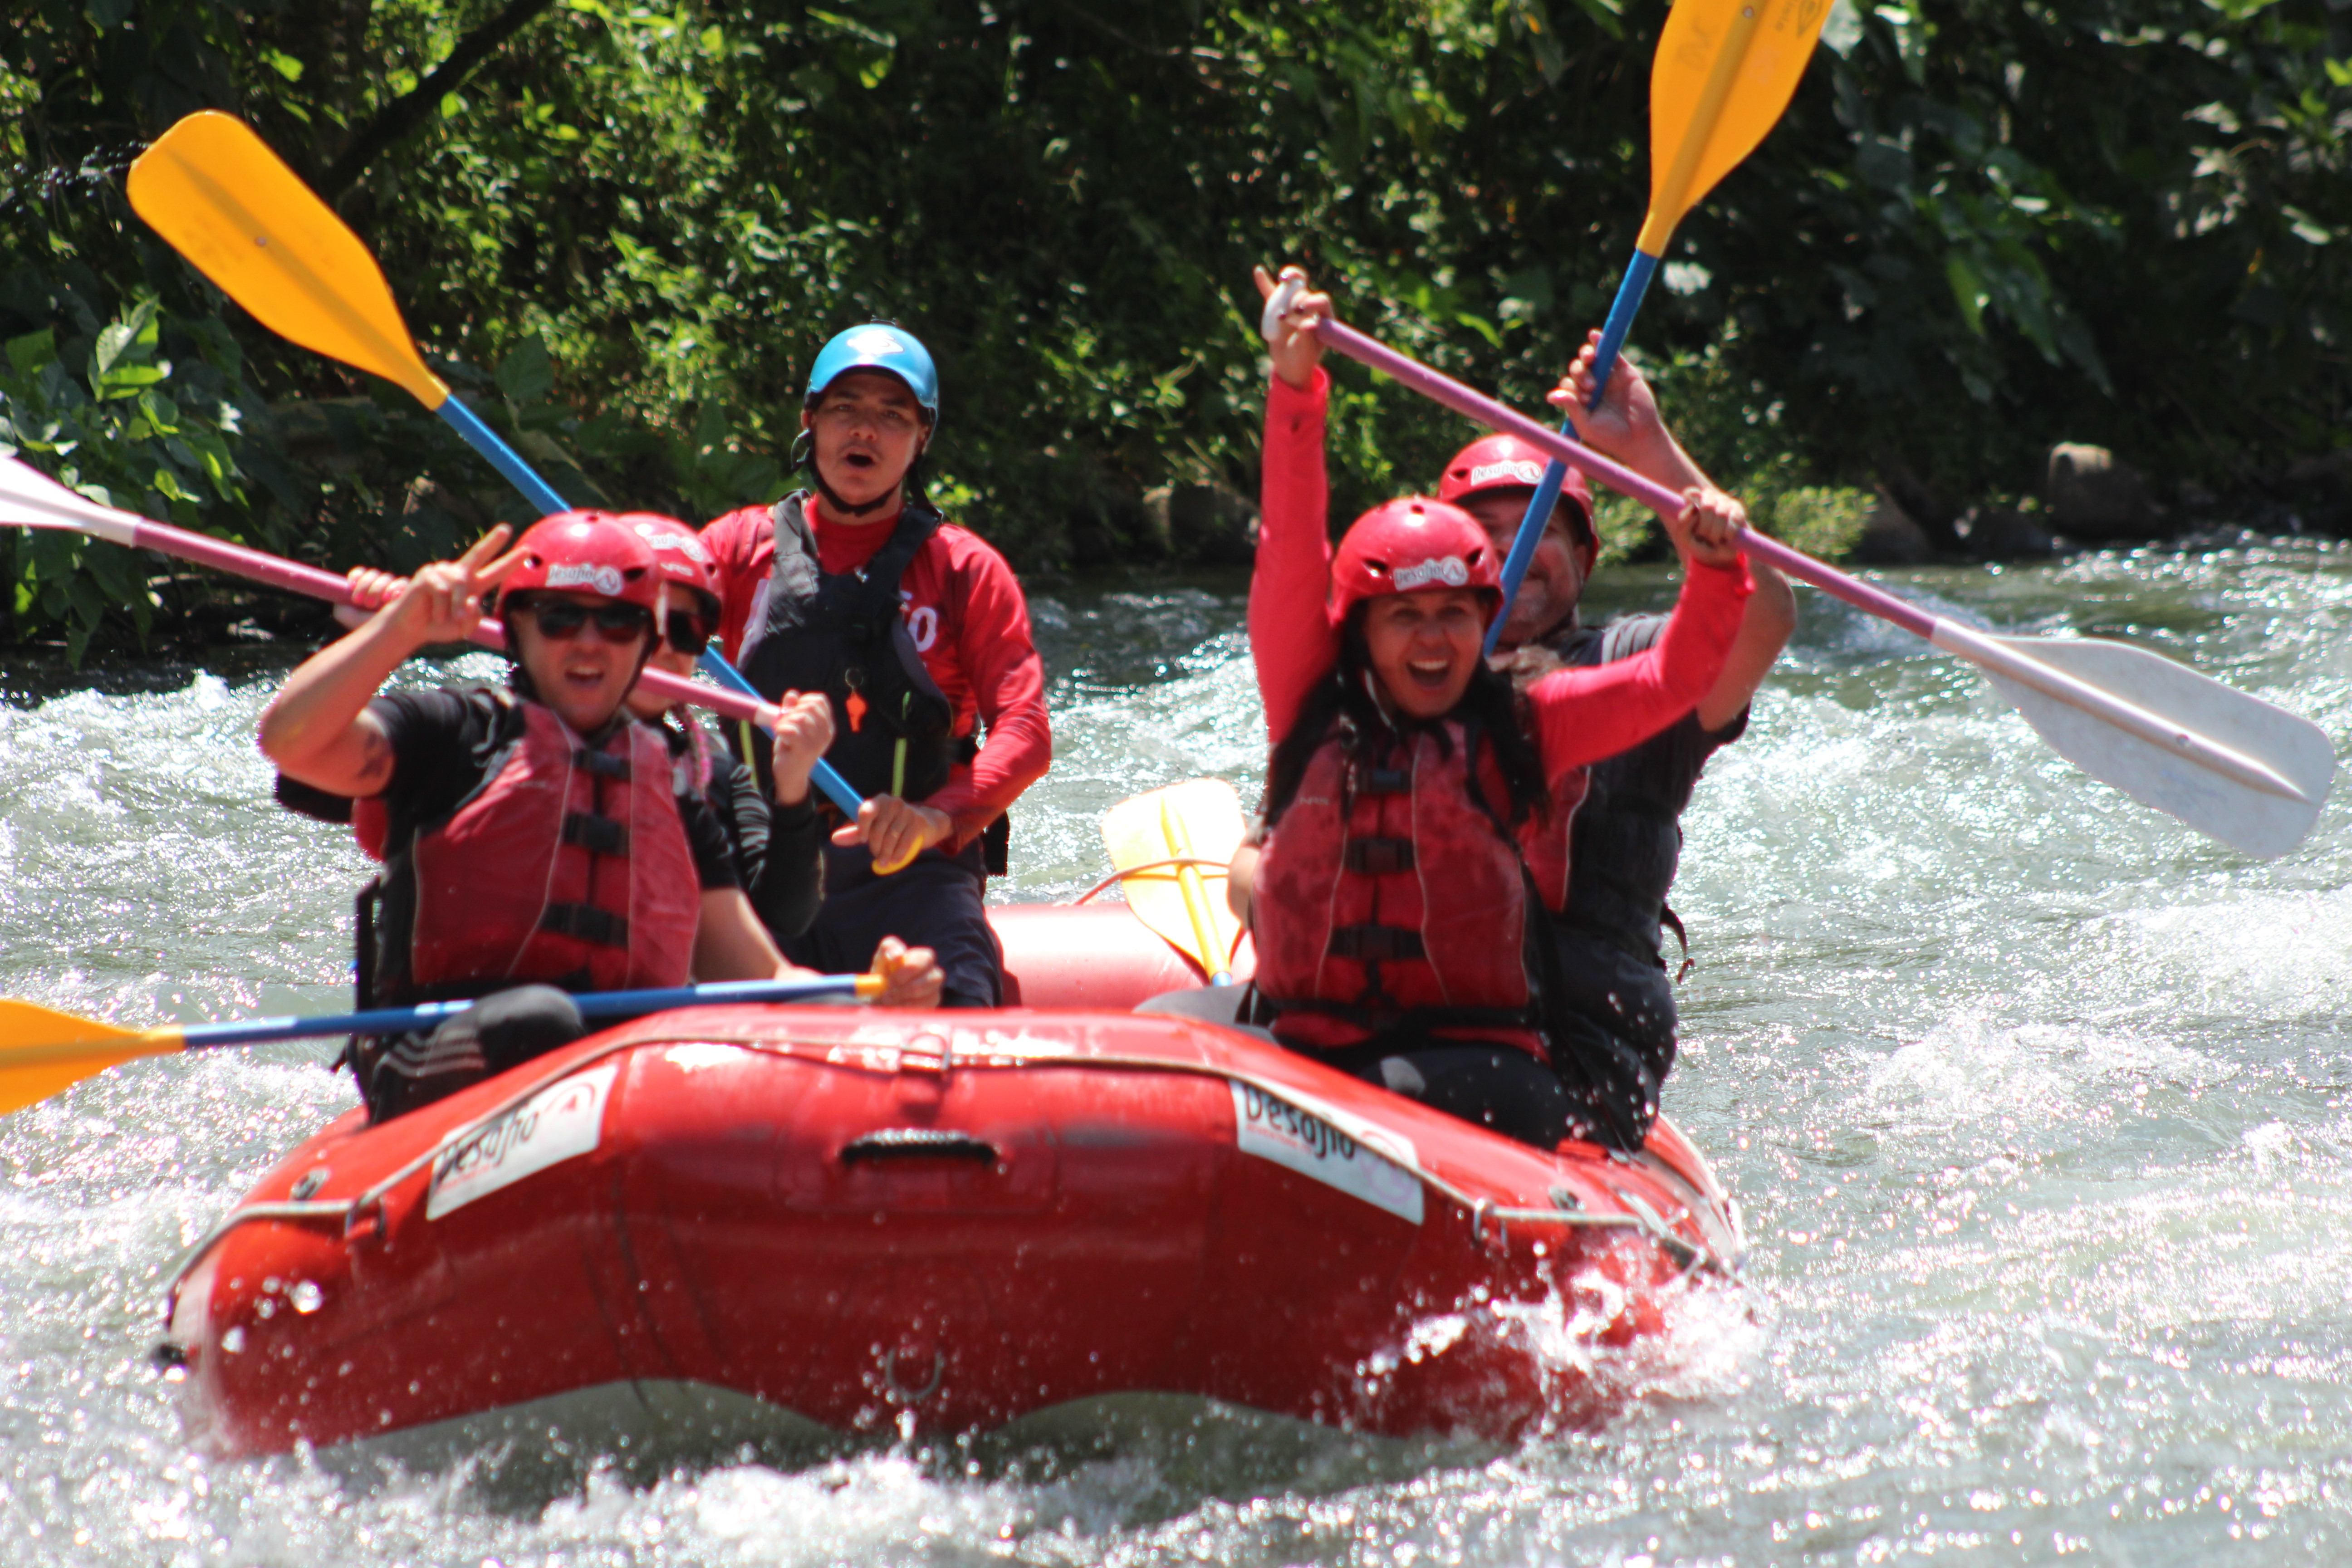 Go rafting on the Sarapiqui River when you travel fromSan Jose to La Fortuna Arenal! The Sarapiqui River is considered one of Costa Rica best rivers for rafting!